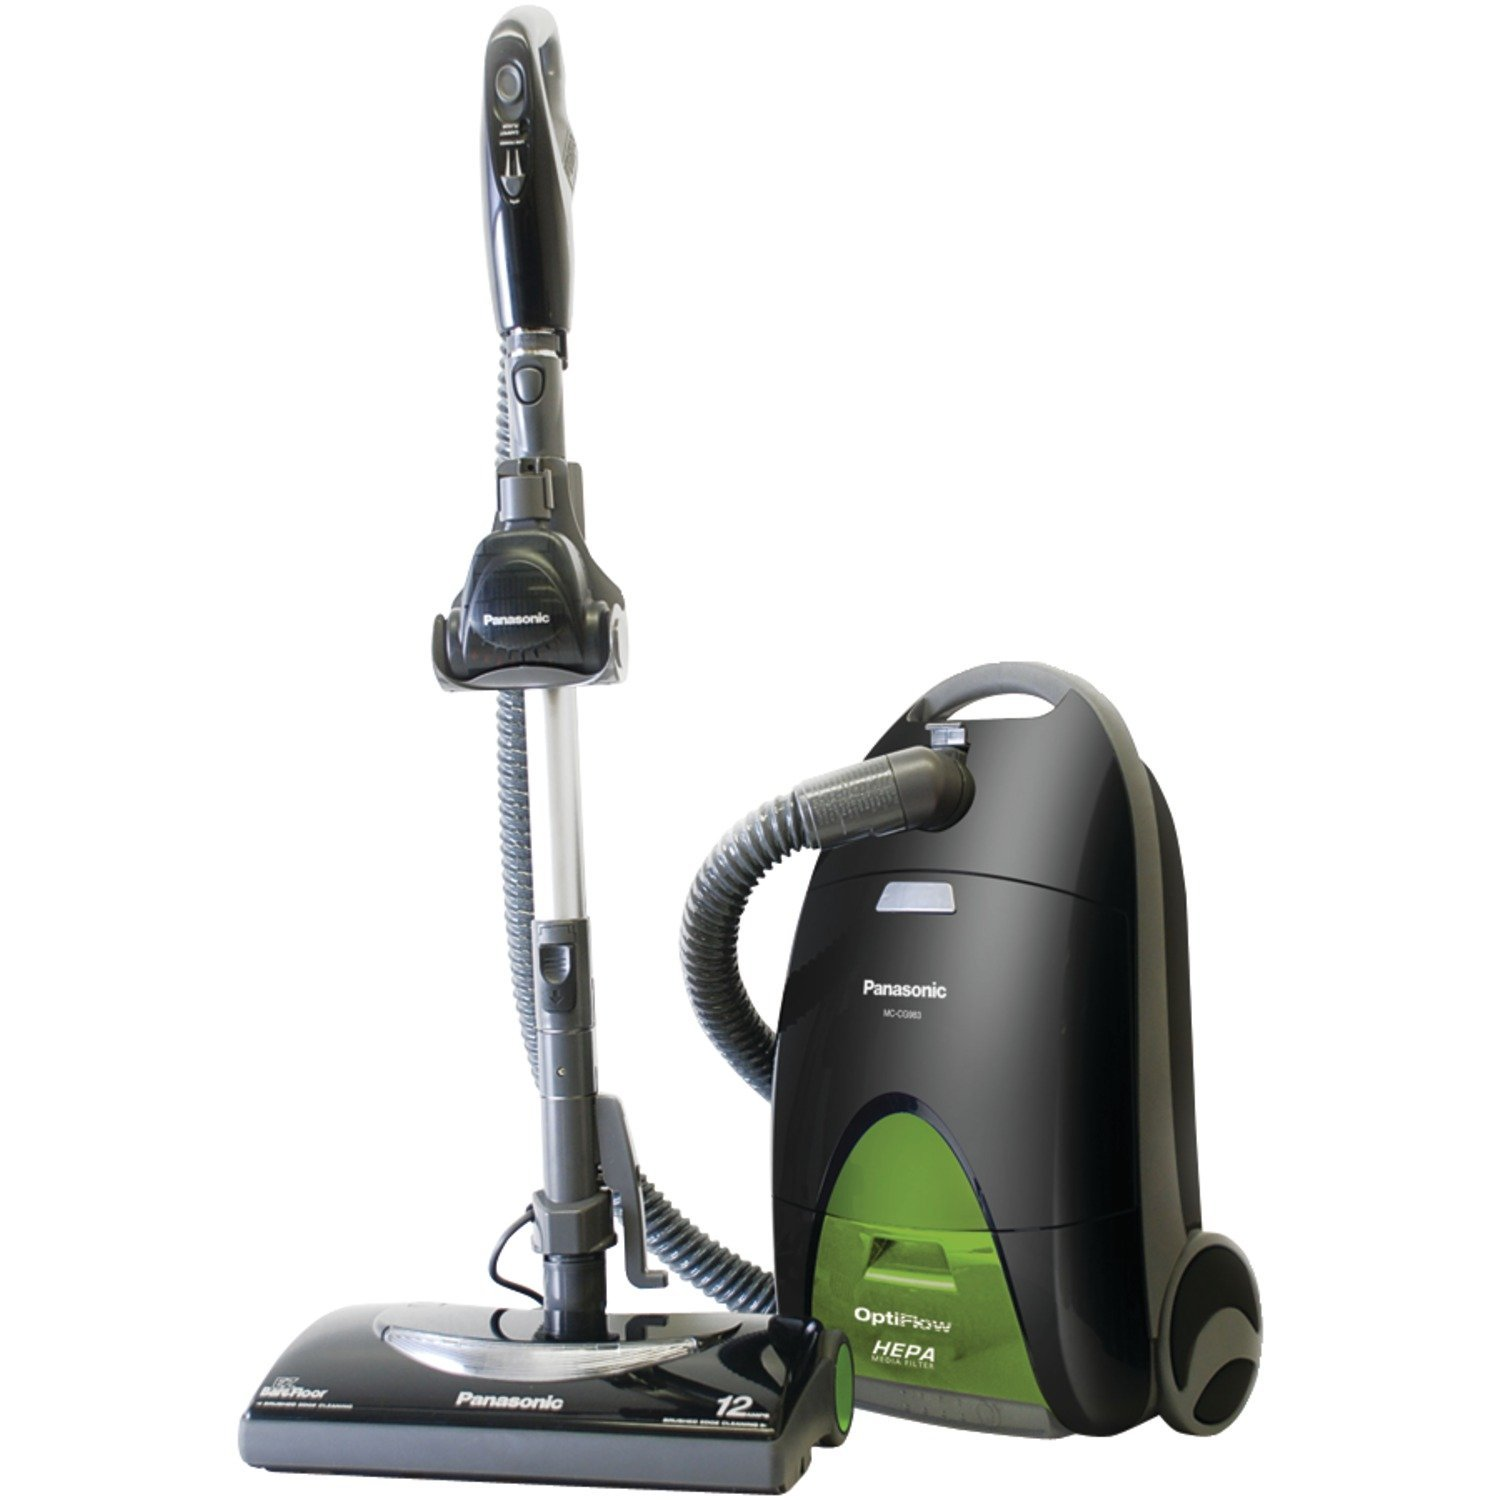 Panasonic MC-CG917 OptiFlow Bag Canister Vacuum Cleaner - Corded